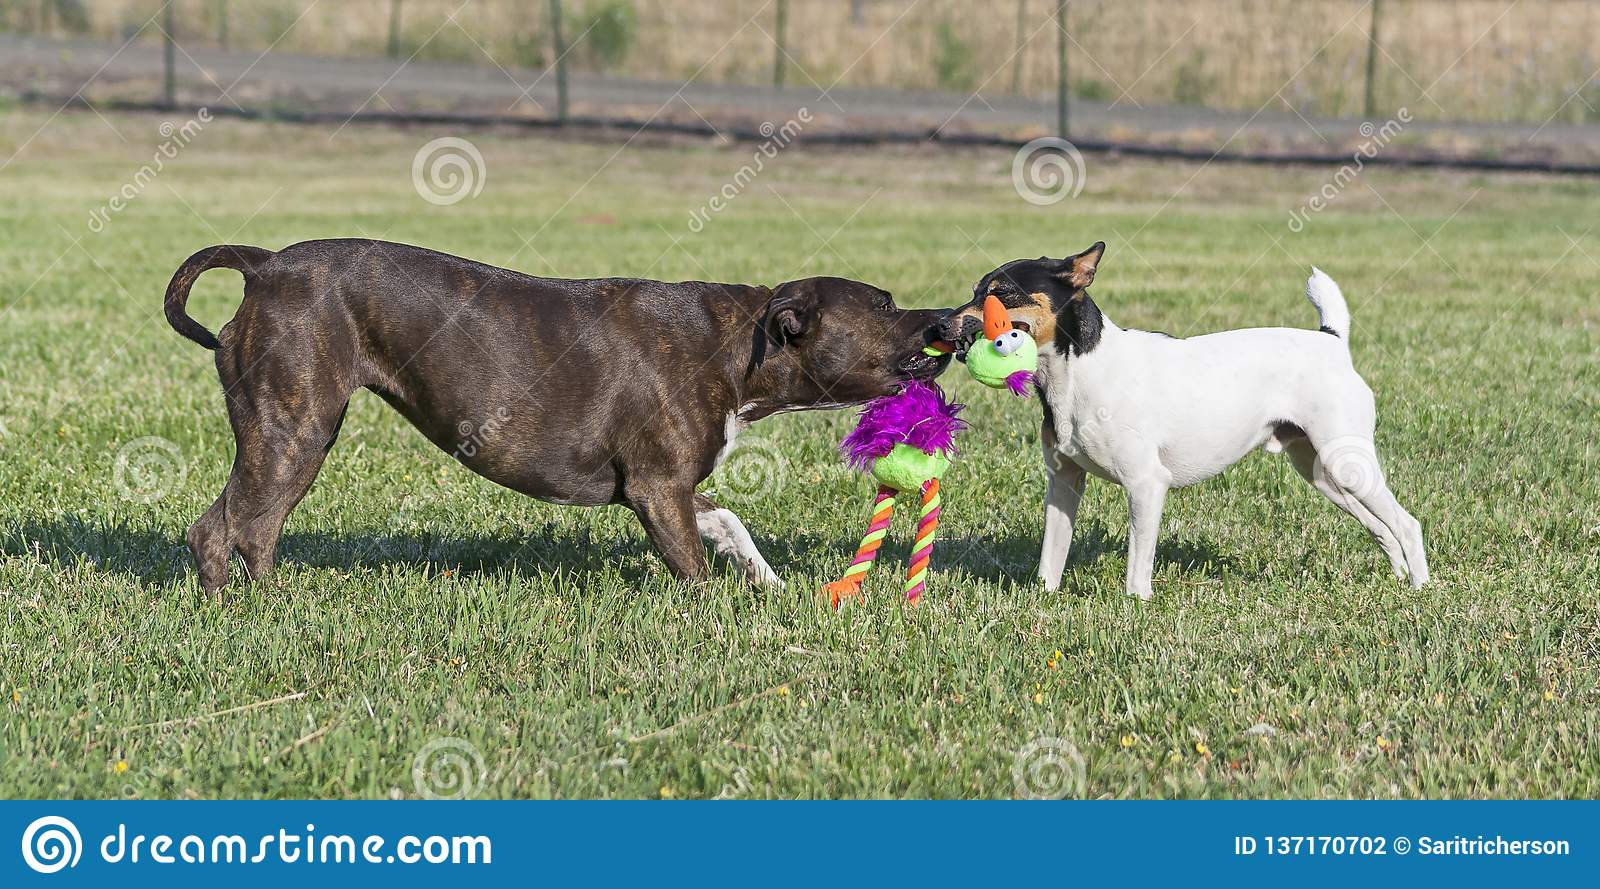 Two Dogs Playing Tug of War in a Pasture